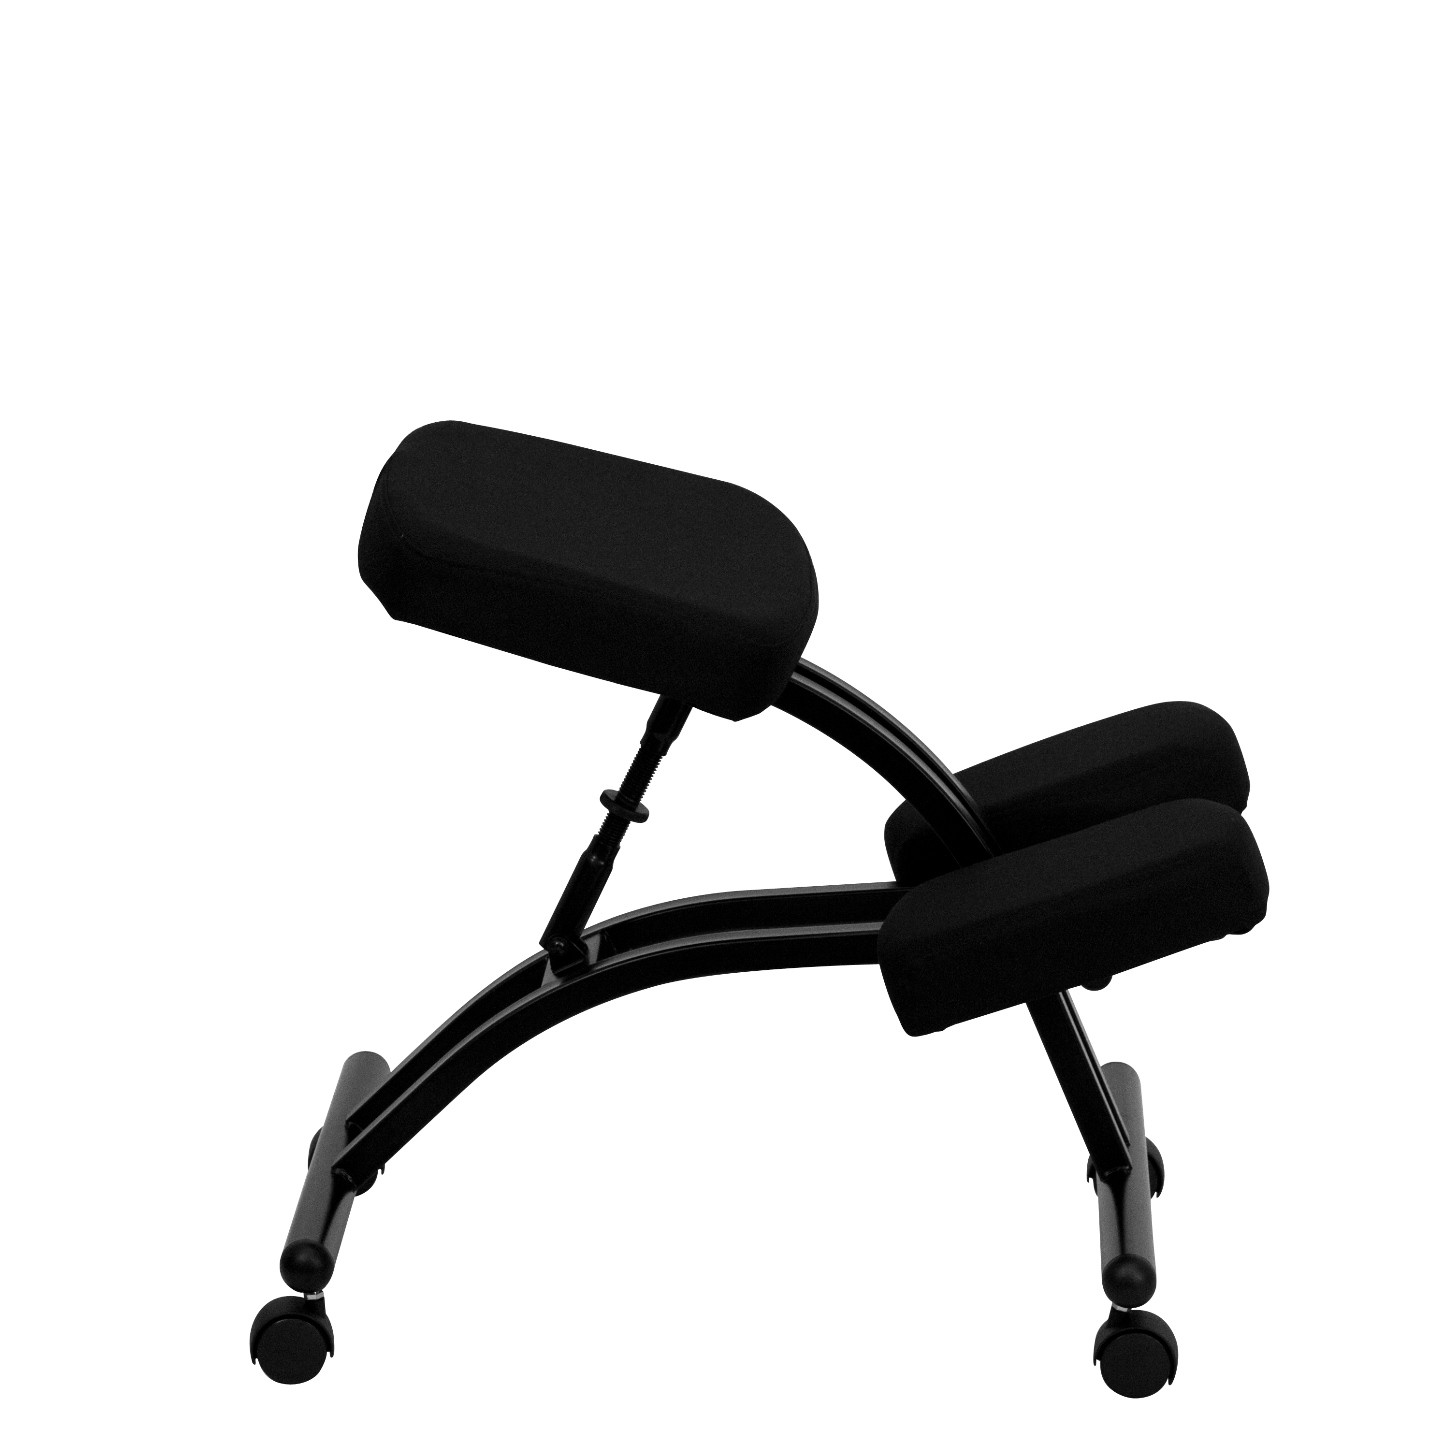 Mobile Ergonomic Kneeling Chair In Black Fabric From